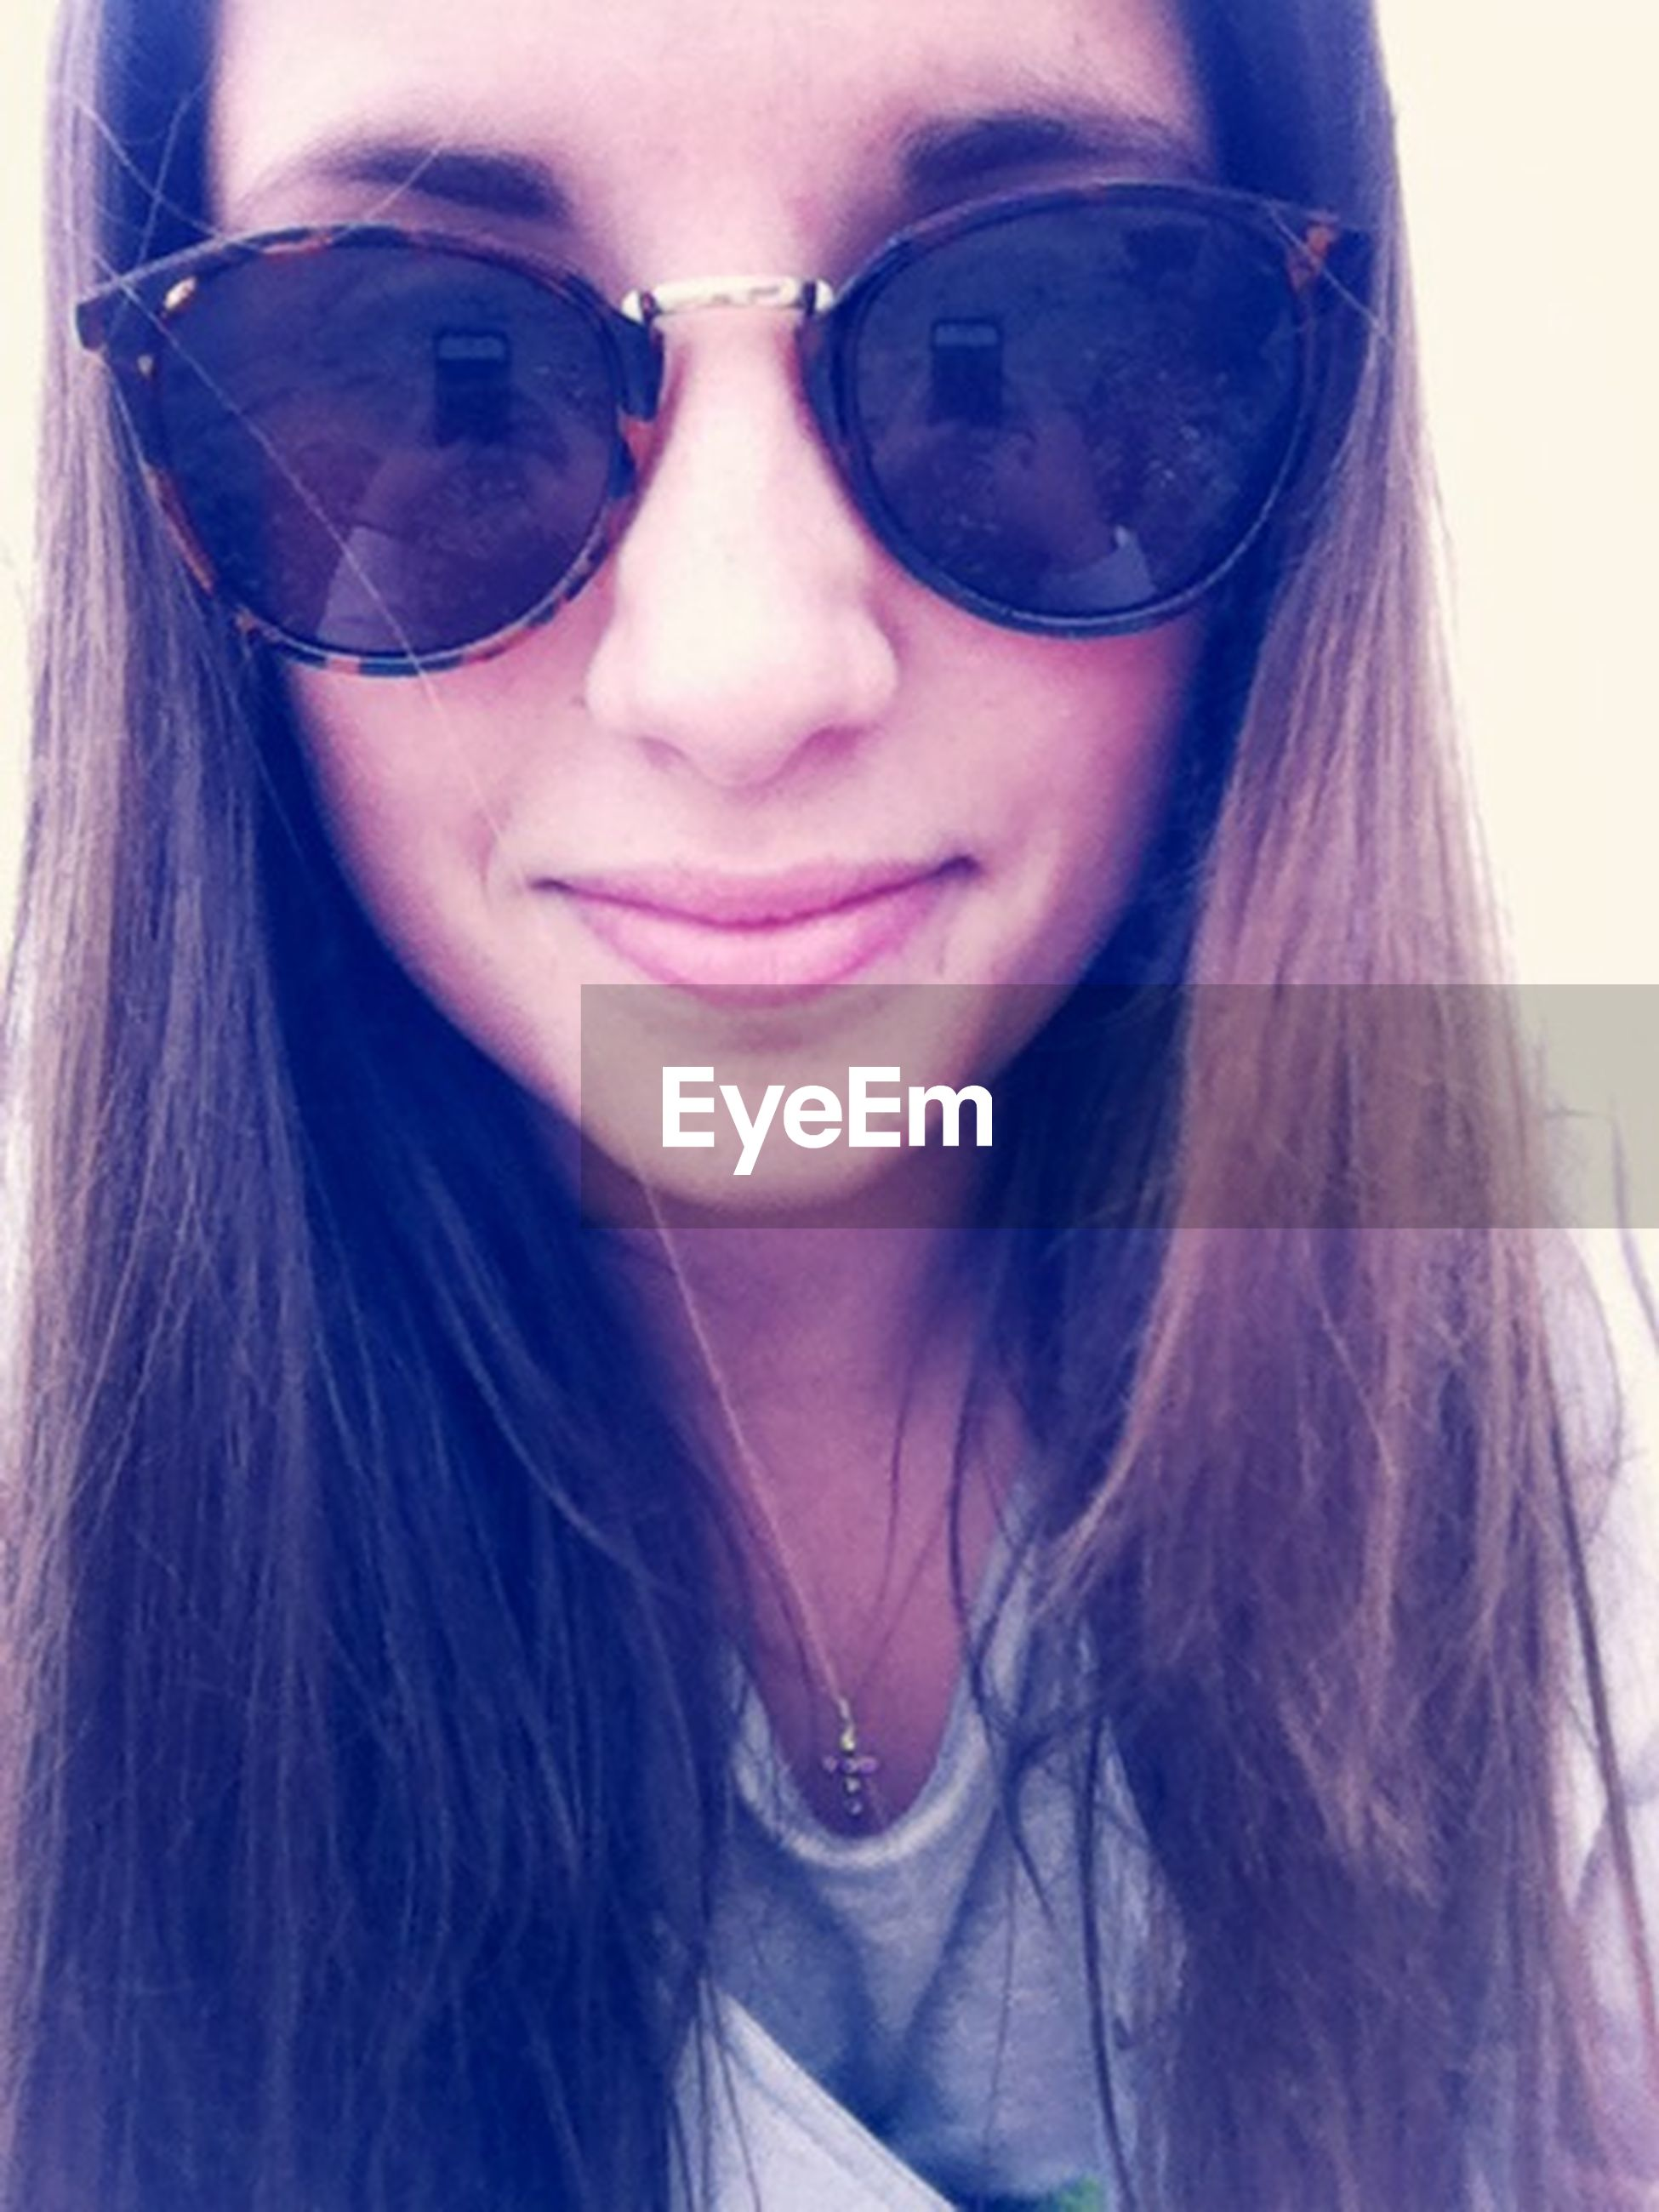 sunglasses, lifestyles, leisure activity, person, young adult, headshot, close-up, young women, reflection, eyeglasses, front view, looking at camera, long hair, portrait, transparent, human face, smiling